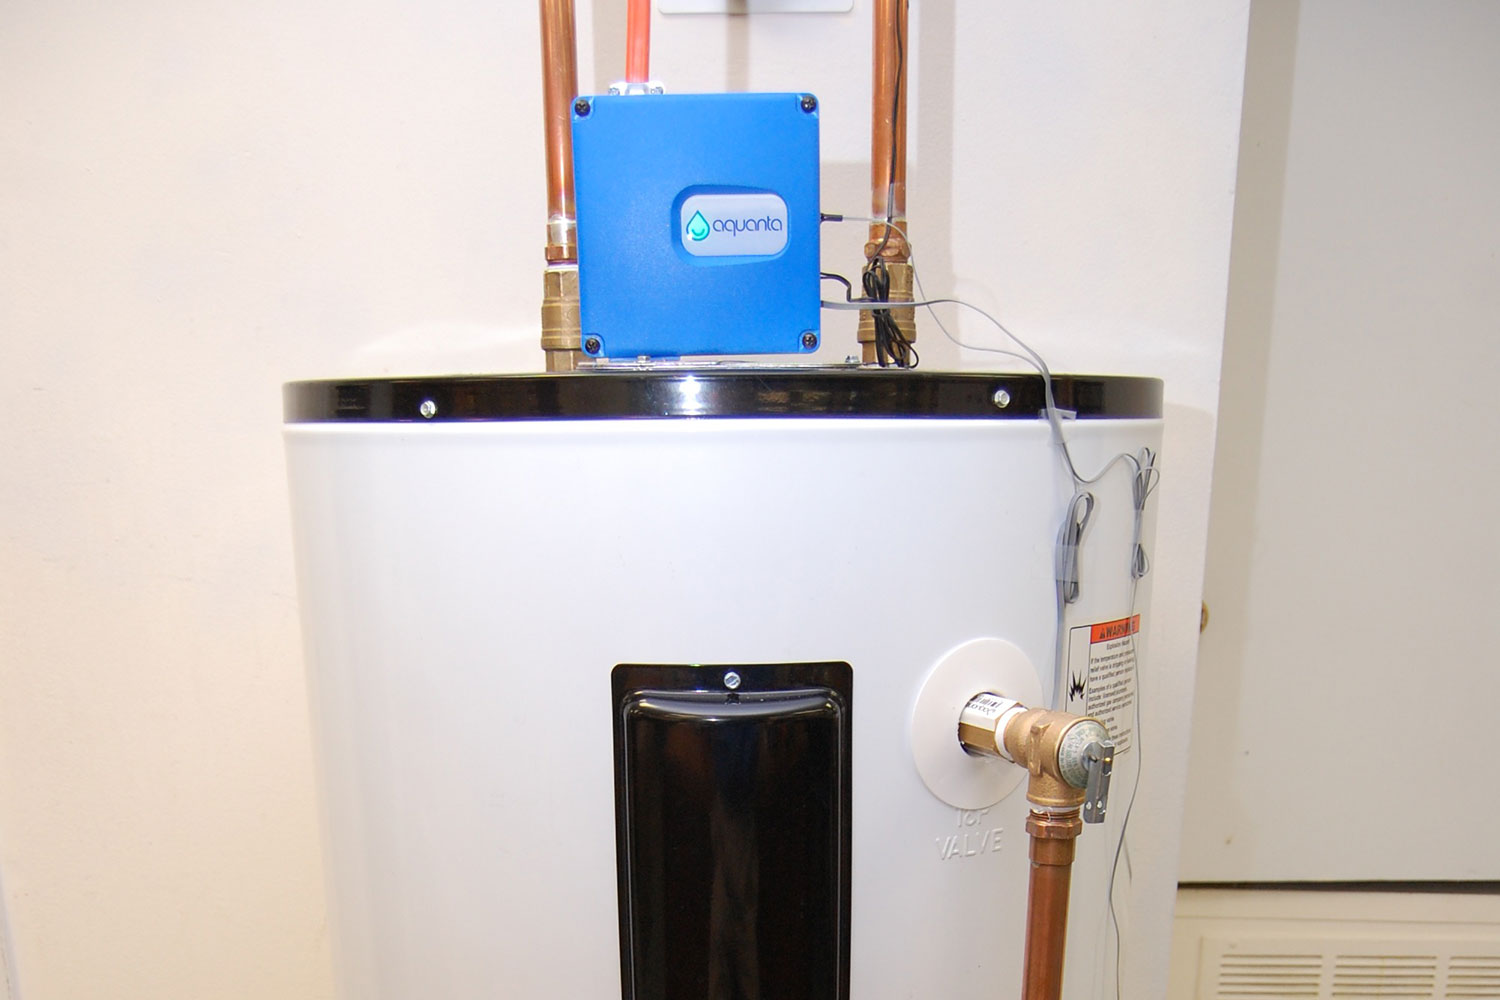 The Aquanta Turns Your Dumb Water Heater Smart To Save